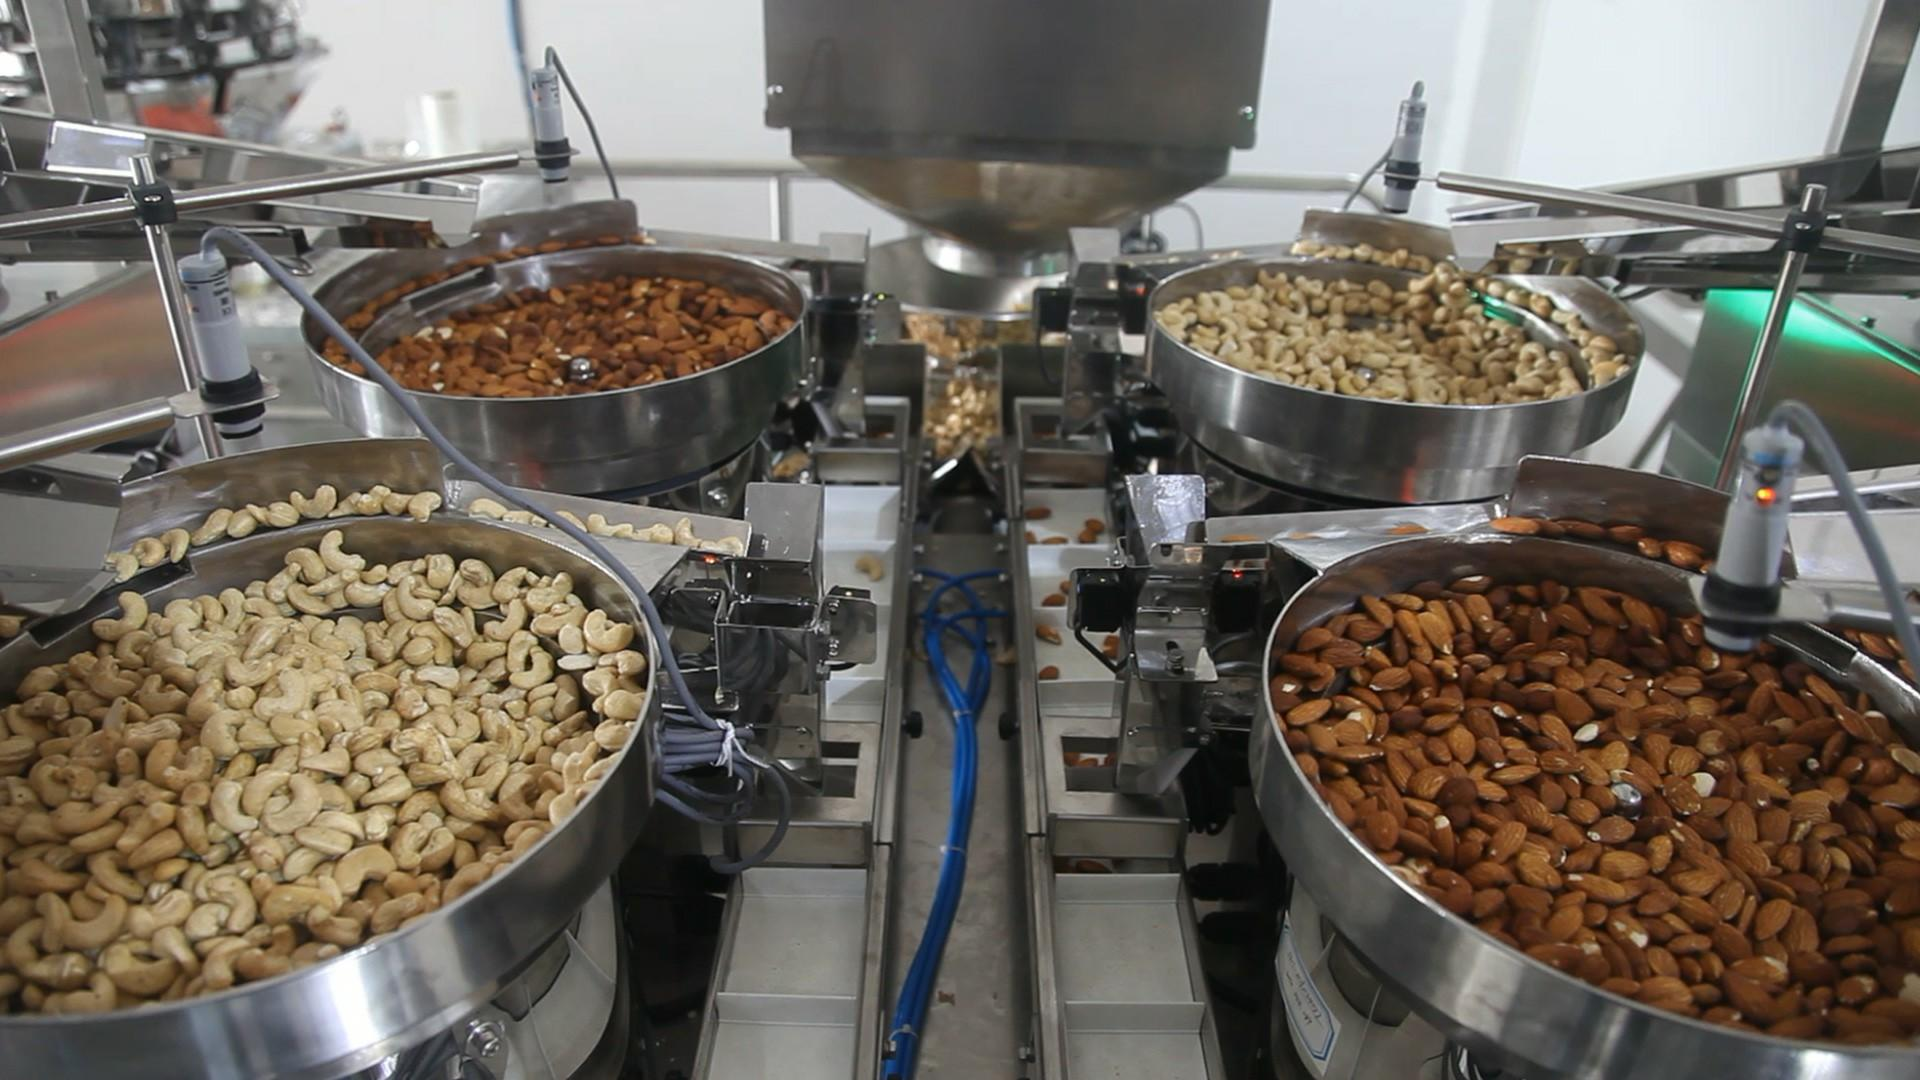 Automatic packaging application system for nuts quantitative counting ,weighing,and mixing